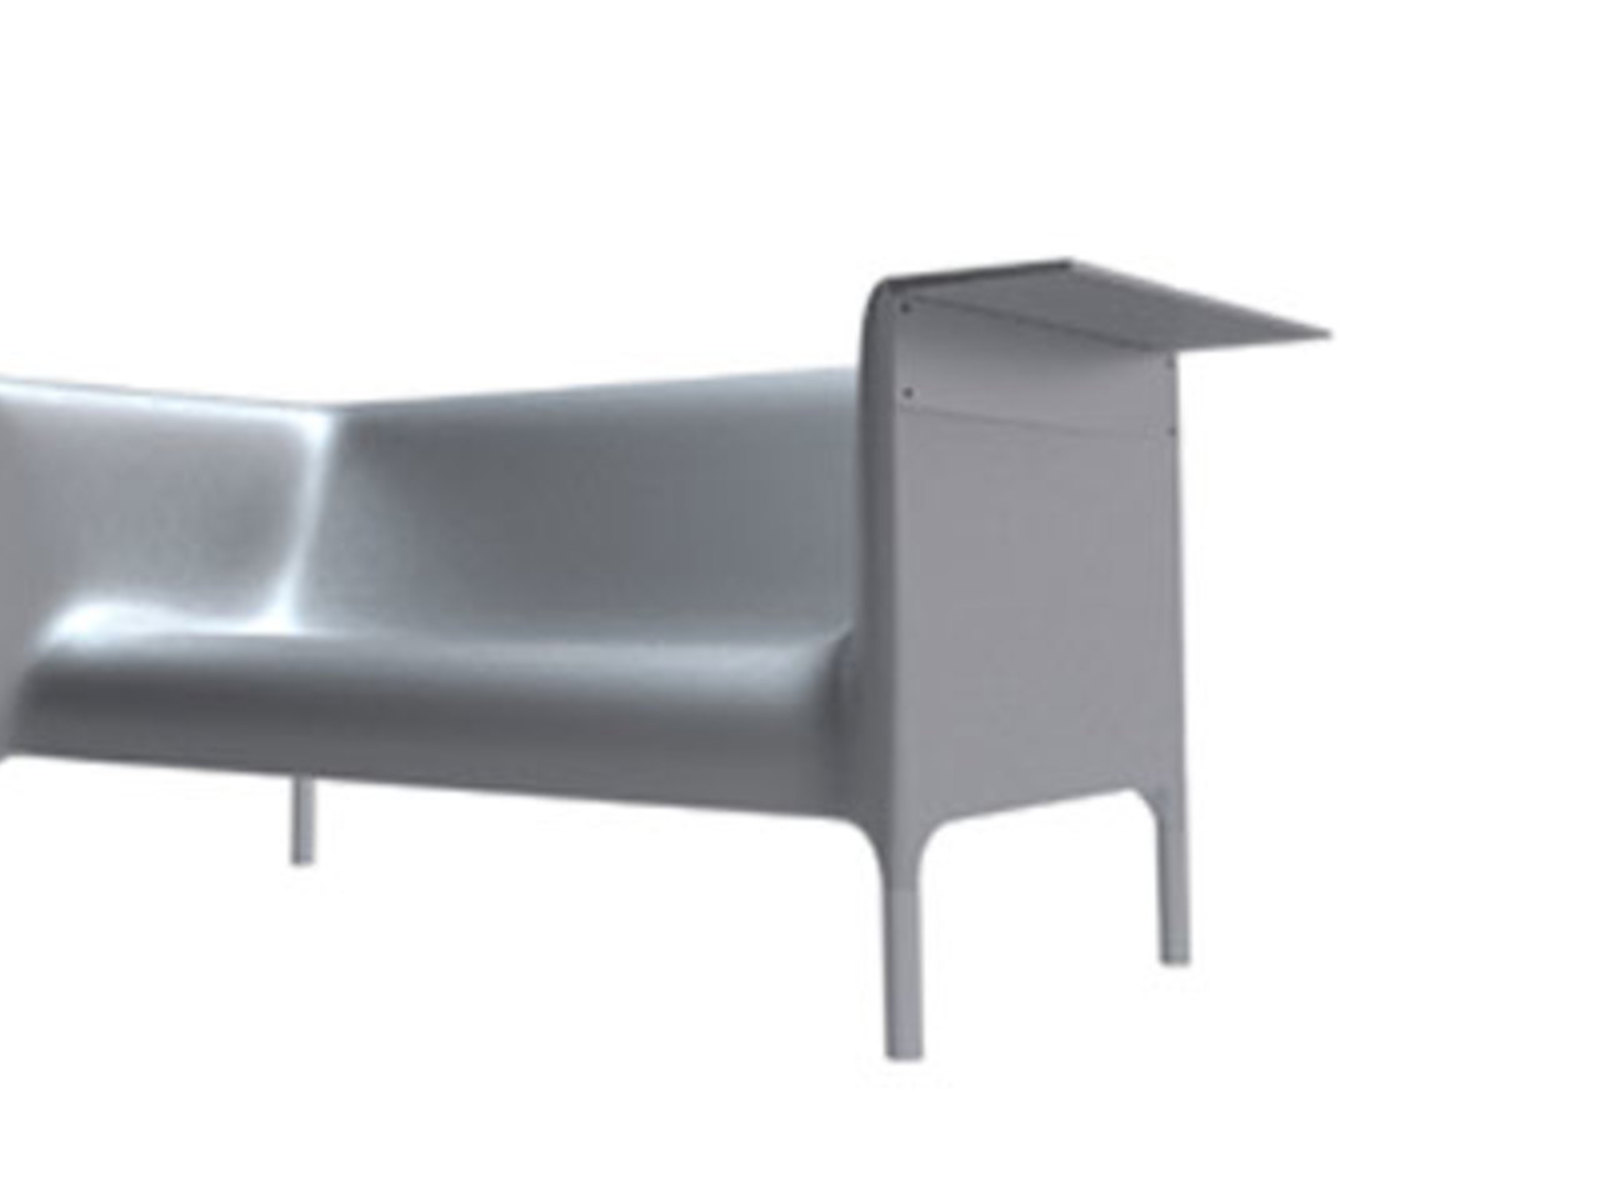 Out/In, sofa, high easychair, low easychair, Philippe Starck with Eugeni Quitllet, Driade, 2009